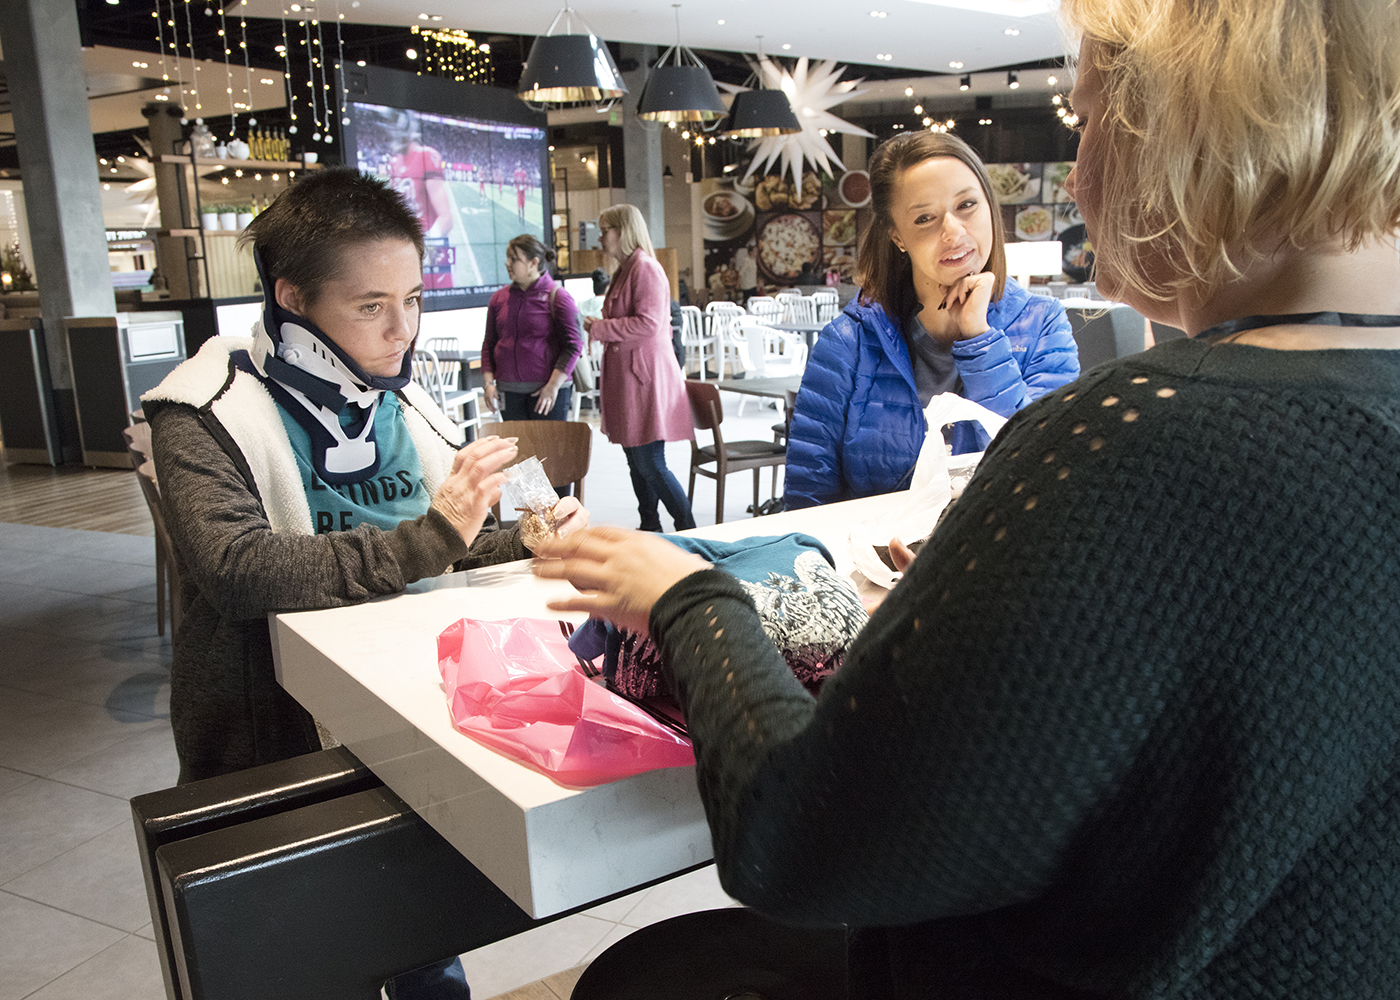 Craig Hospital Spinal Cord Injury Patient & Traumatic Brain Injury Patients Paying for Holiday Presents at a Mall